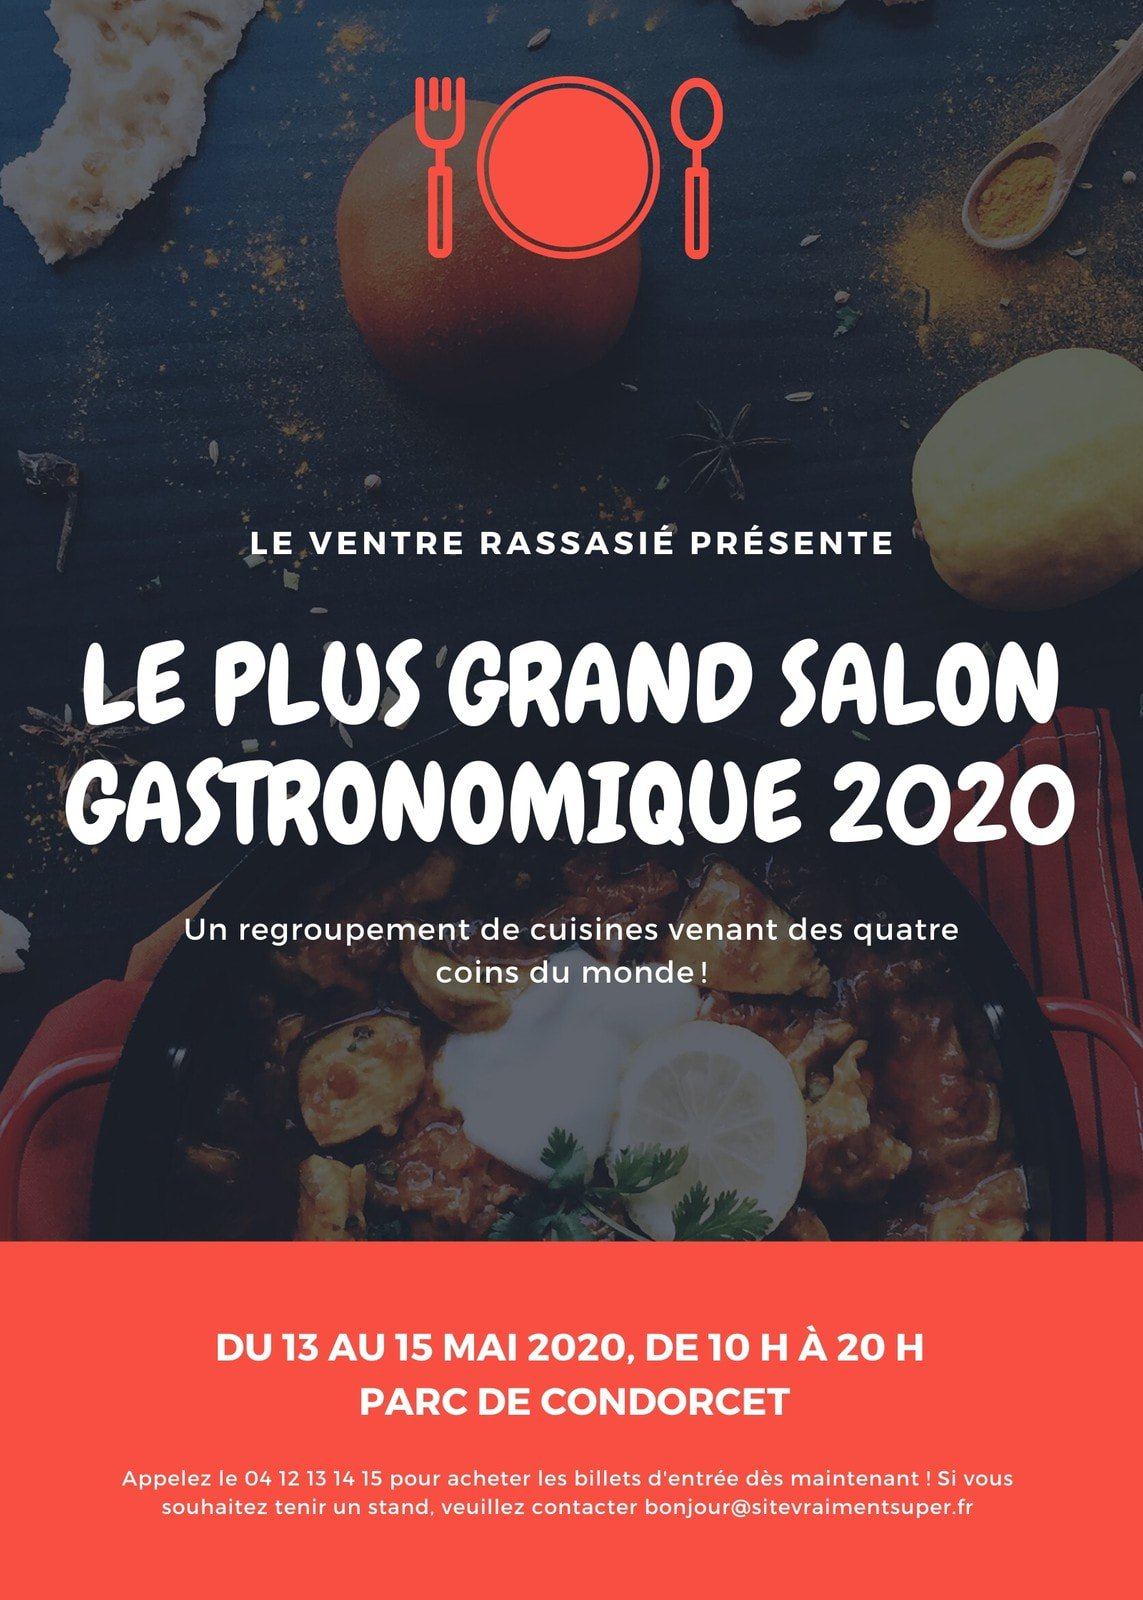 Rouge gastronomique salon flyer